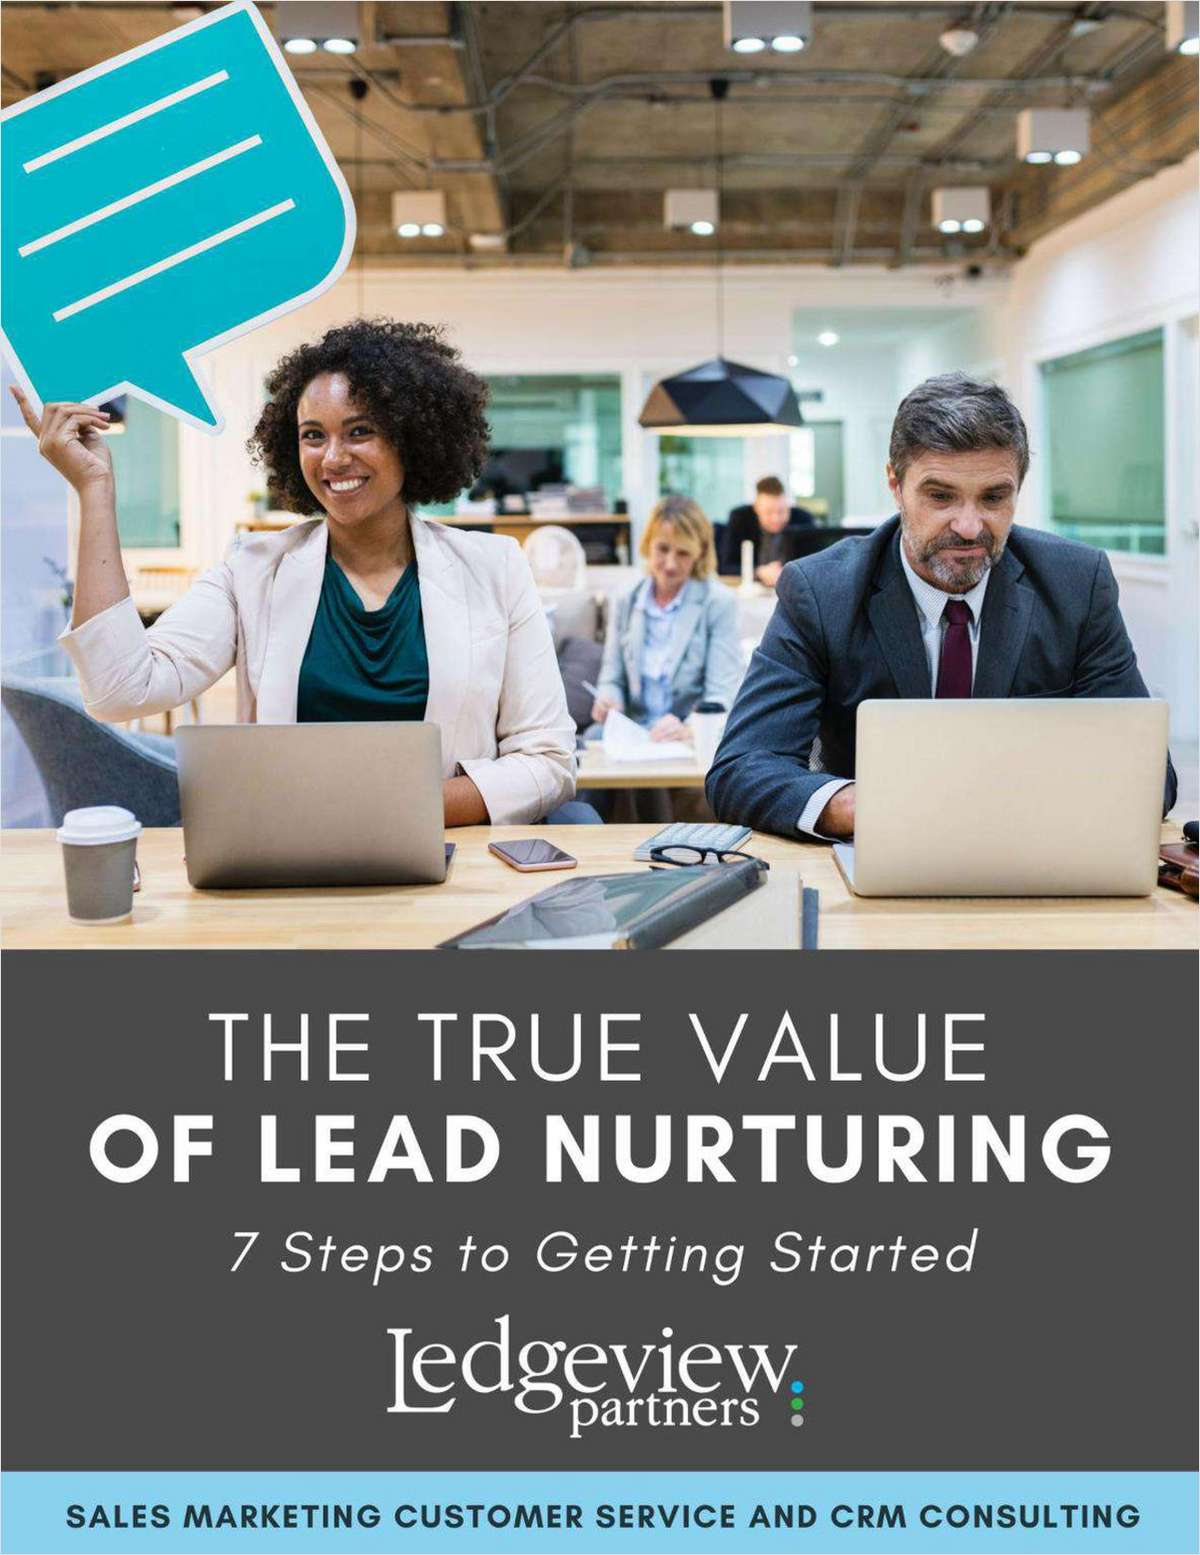 The True Value of Lead Nurturing